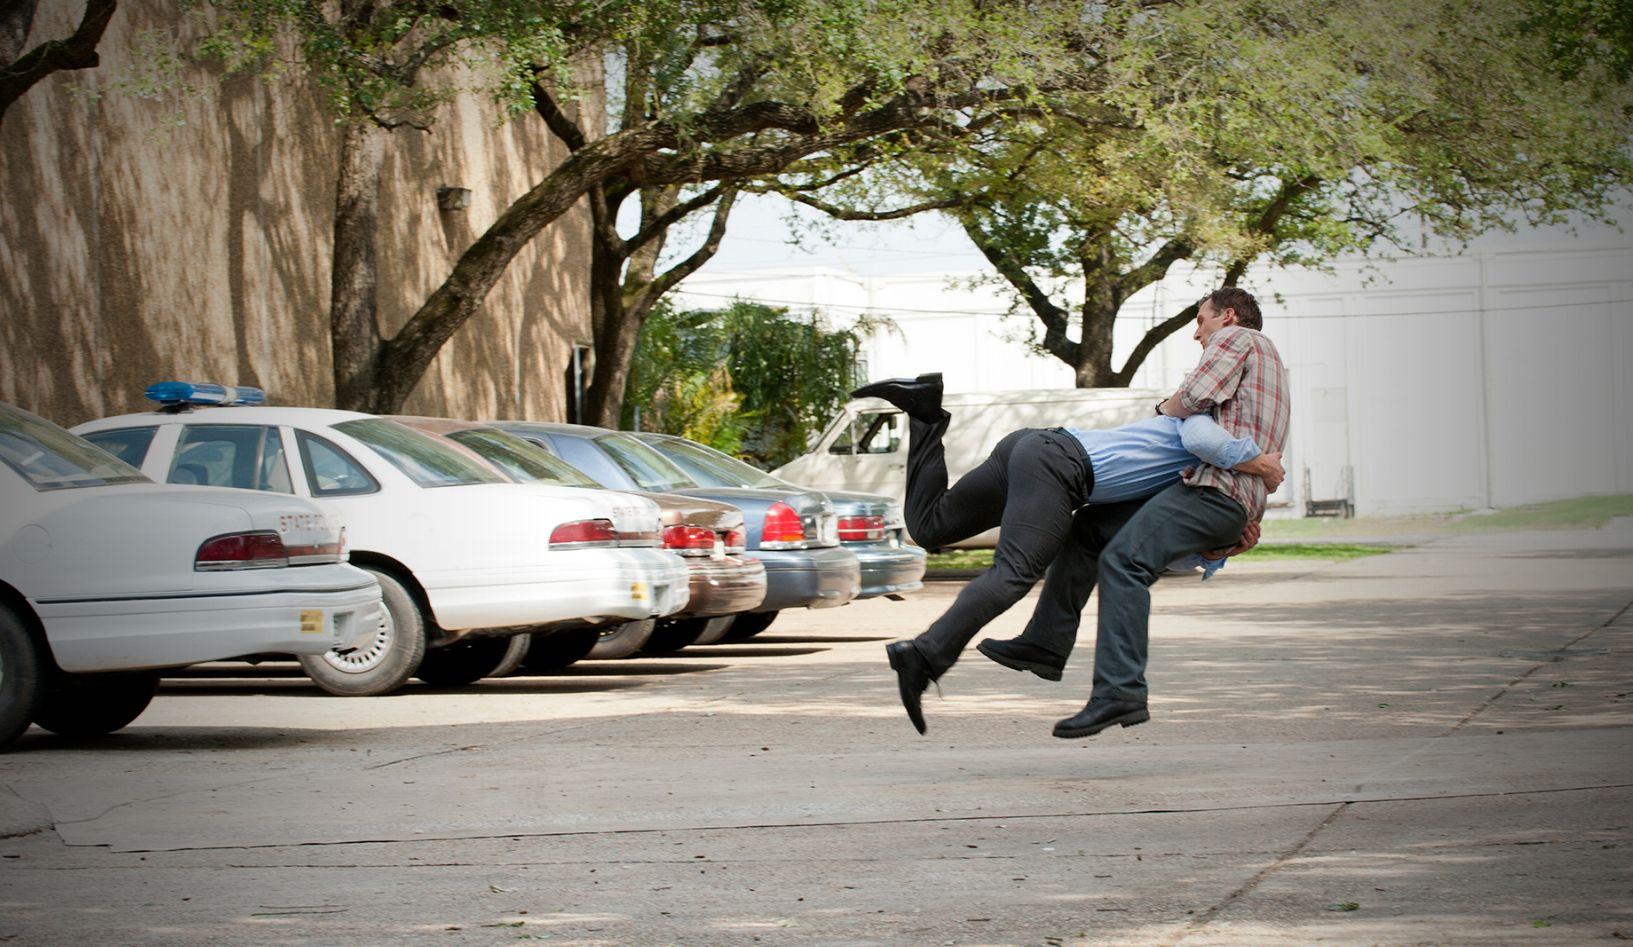 Infuriated Hart attacks Cohle in parking lot